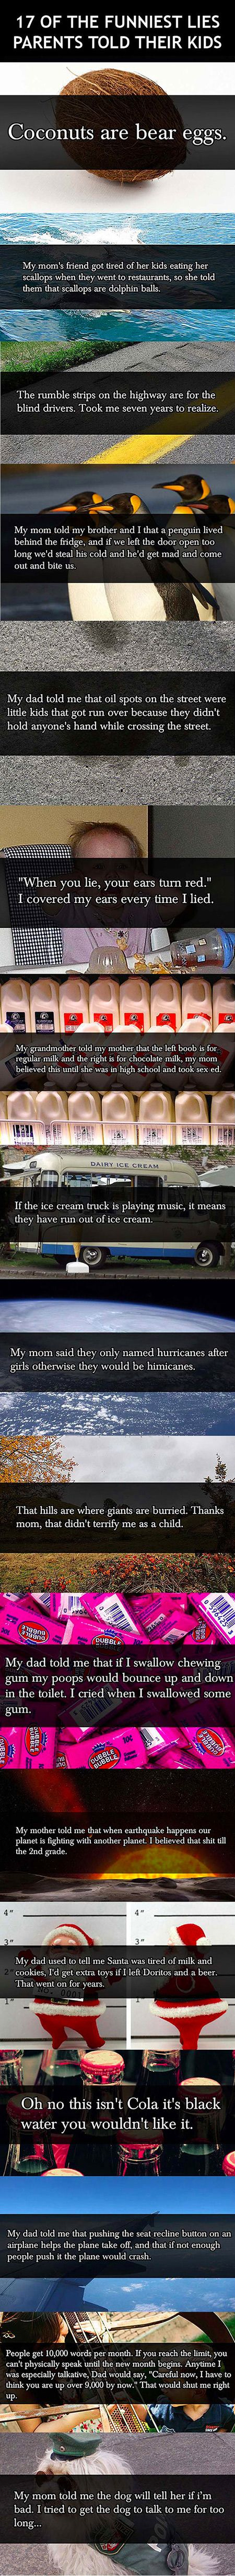 The funniest lies parents told their kids.